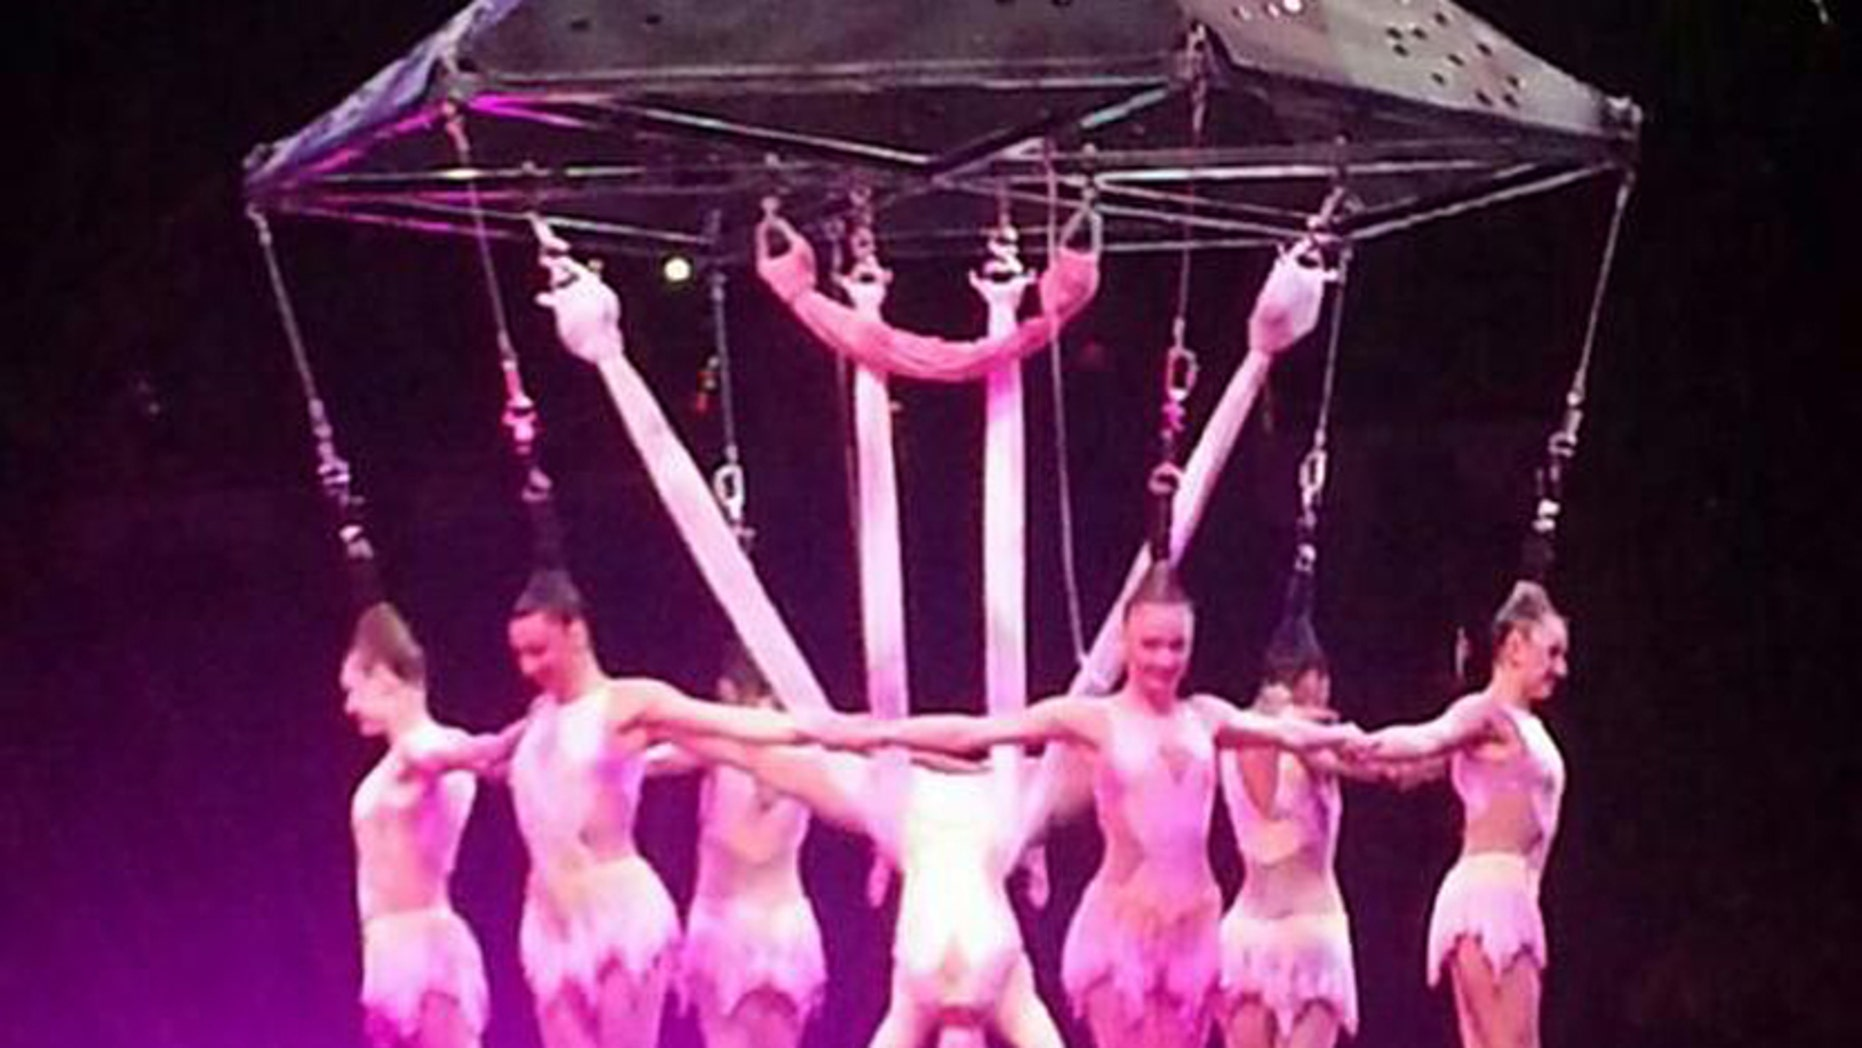 In this photo provided by Frank Caprio, performers hang during an aerial hair-hanging stunt at the Ringling Brothers and Barnum and Bailey Circus, Friday, May 2, 2014, in Providence, R.I. A platform collapsed during an aerial hair-hanging stunt at the 11 a.m. performance Sunday, May 4, sending eight acrobats plummeting to the ground. At least nine performers were seriously injured in the fall, including a dancer below, while an unknown number of others suffered minor injuries. (AP Photo/Frank Caprio) MANDATORY CREDIT